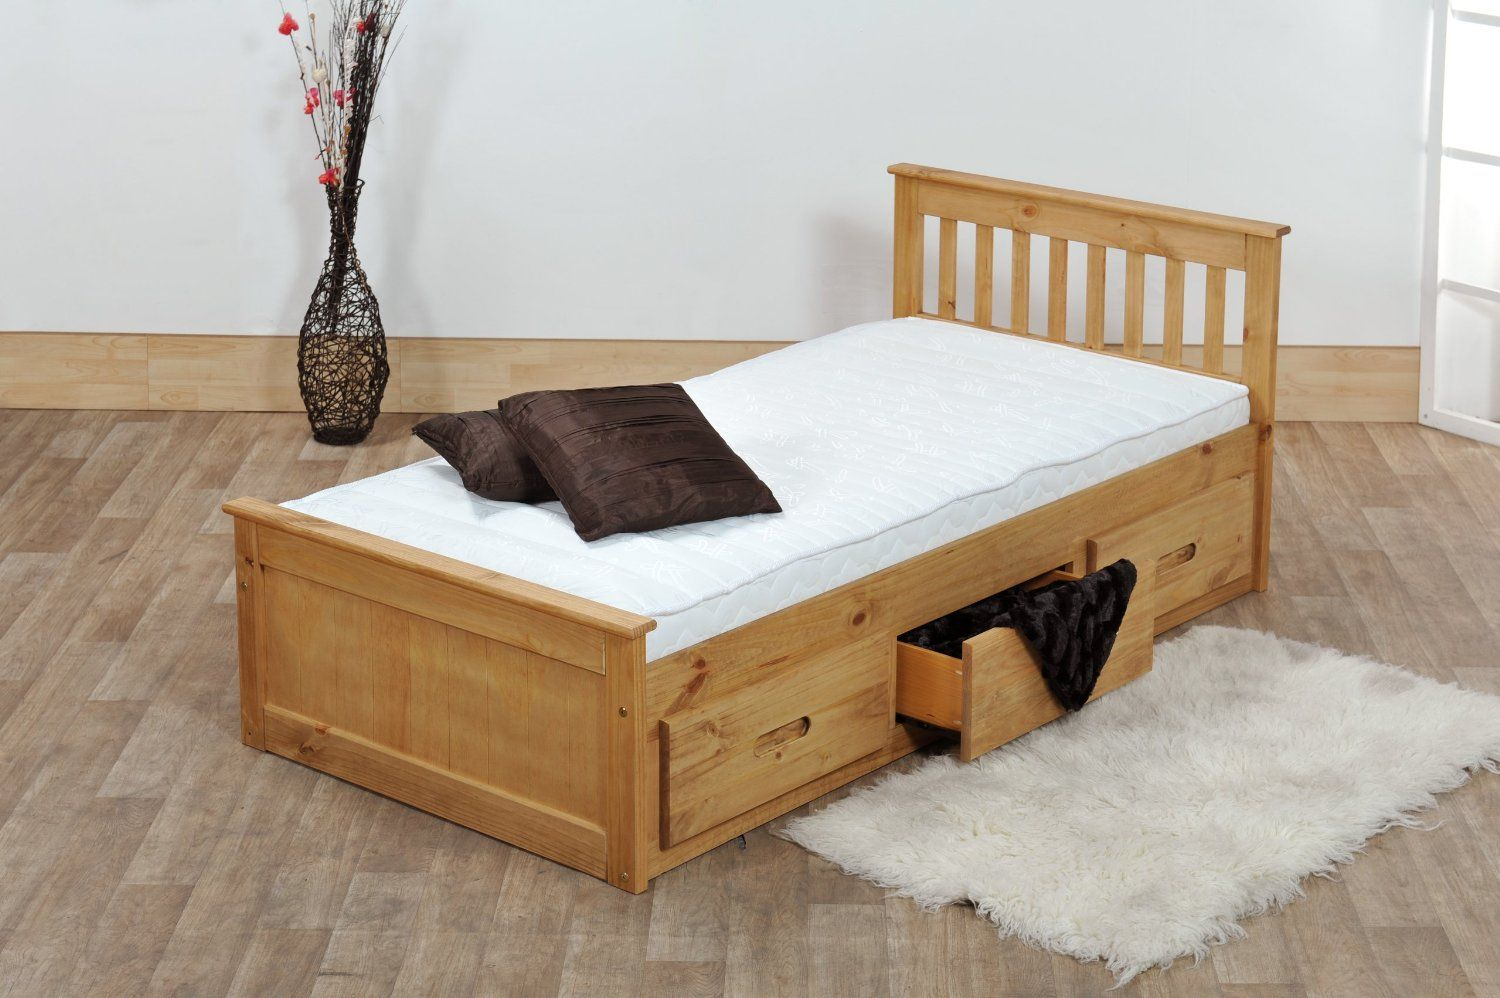 Superior 3ft Single Captain Cabin Storage Solid Pine Wooden Bed Bedframe   Waxed  Pine Finish (Made